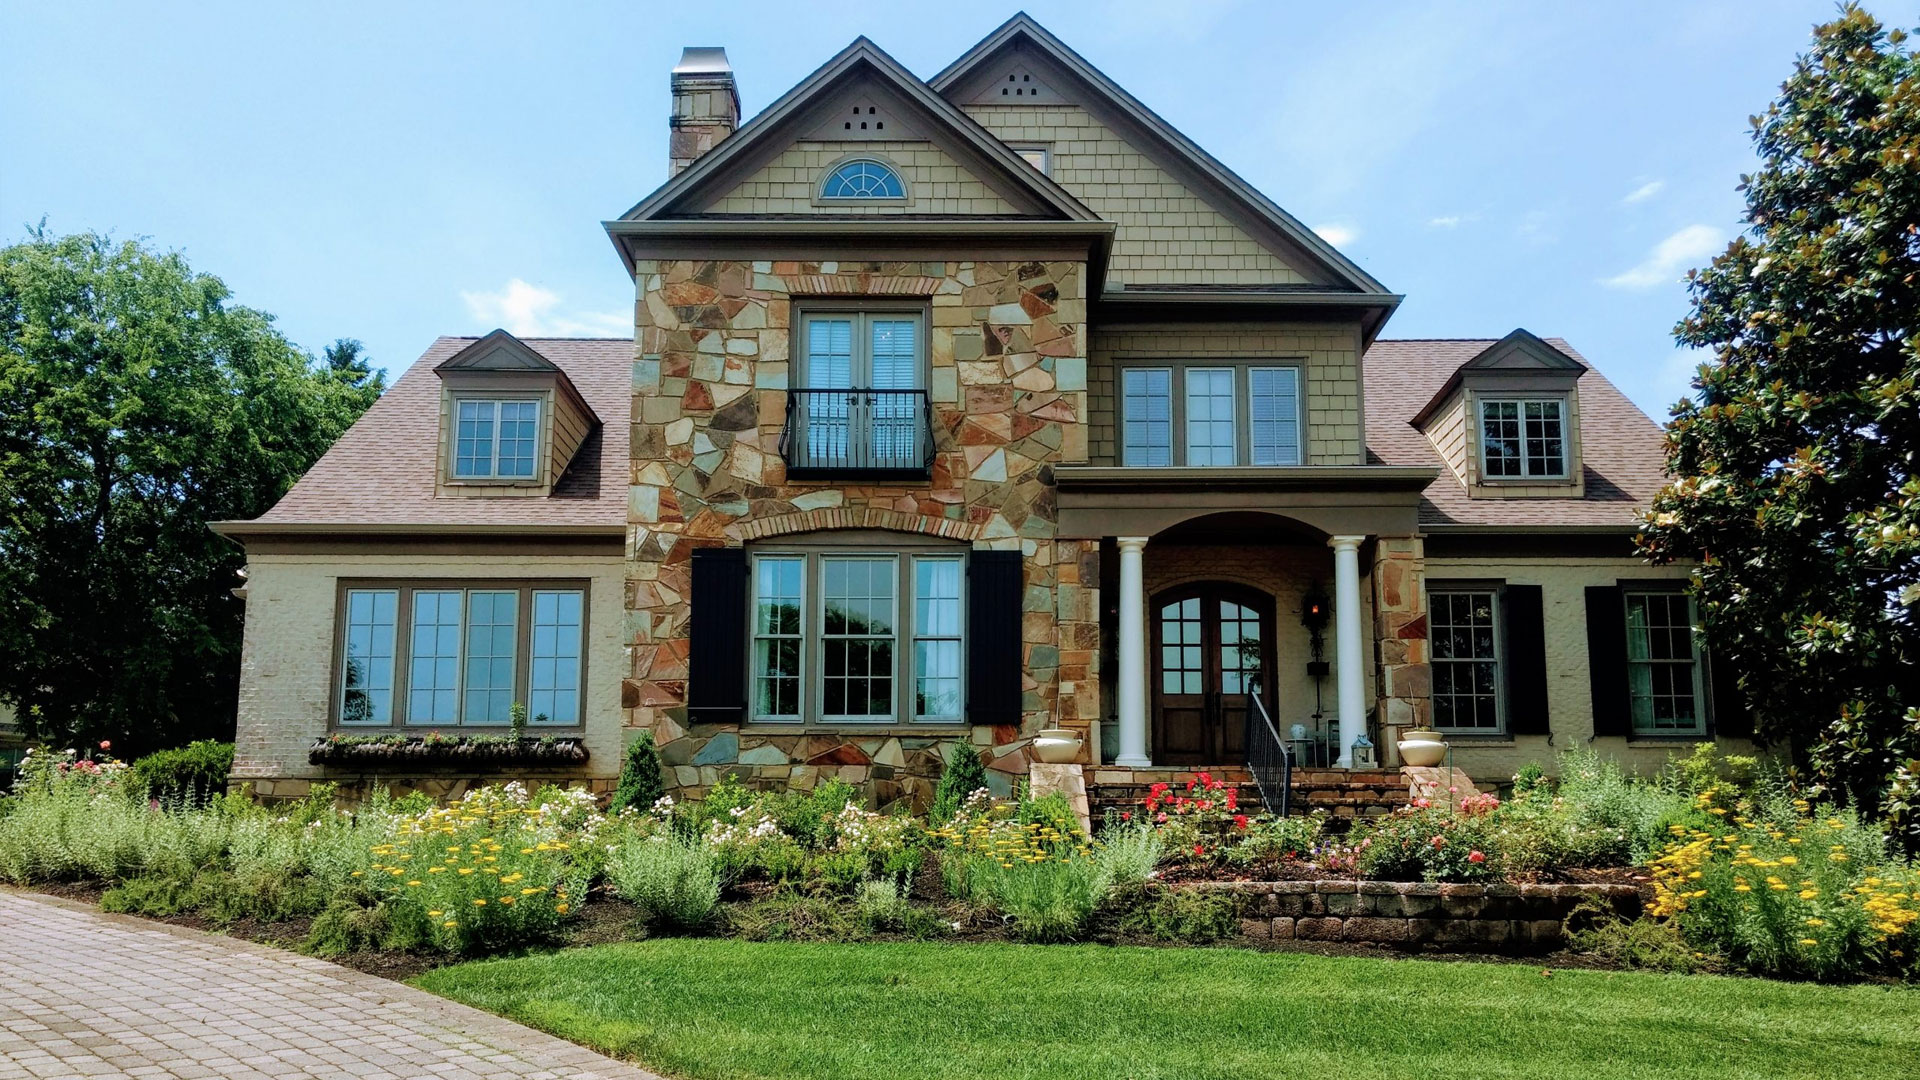 knoxville tn lawn care service